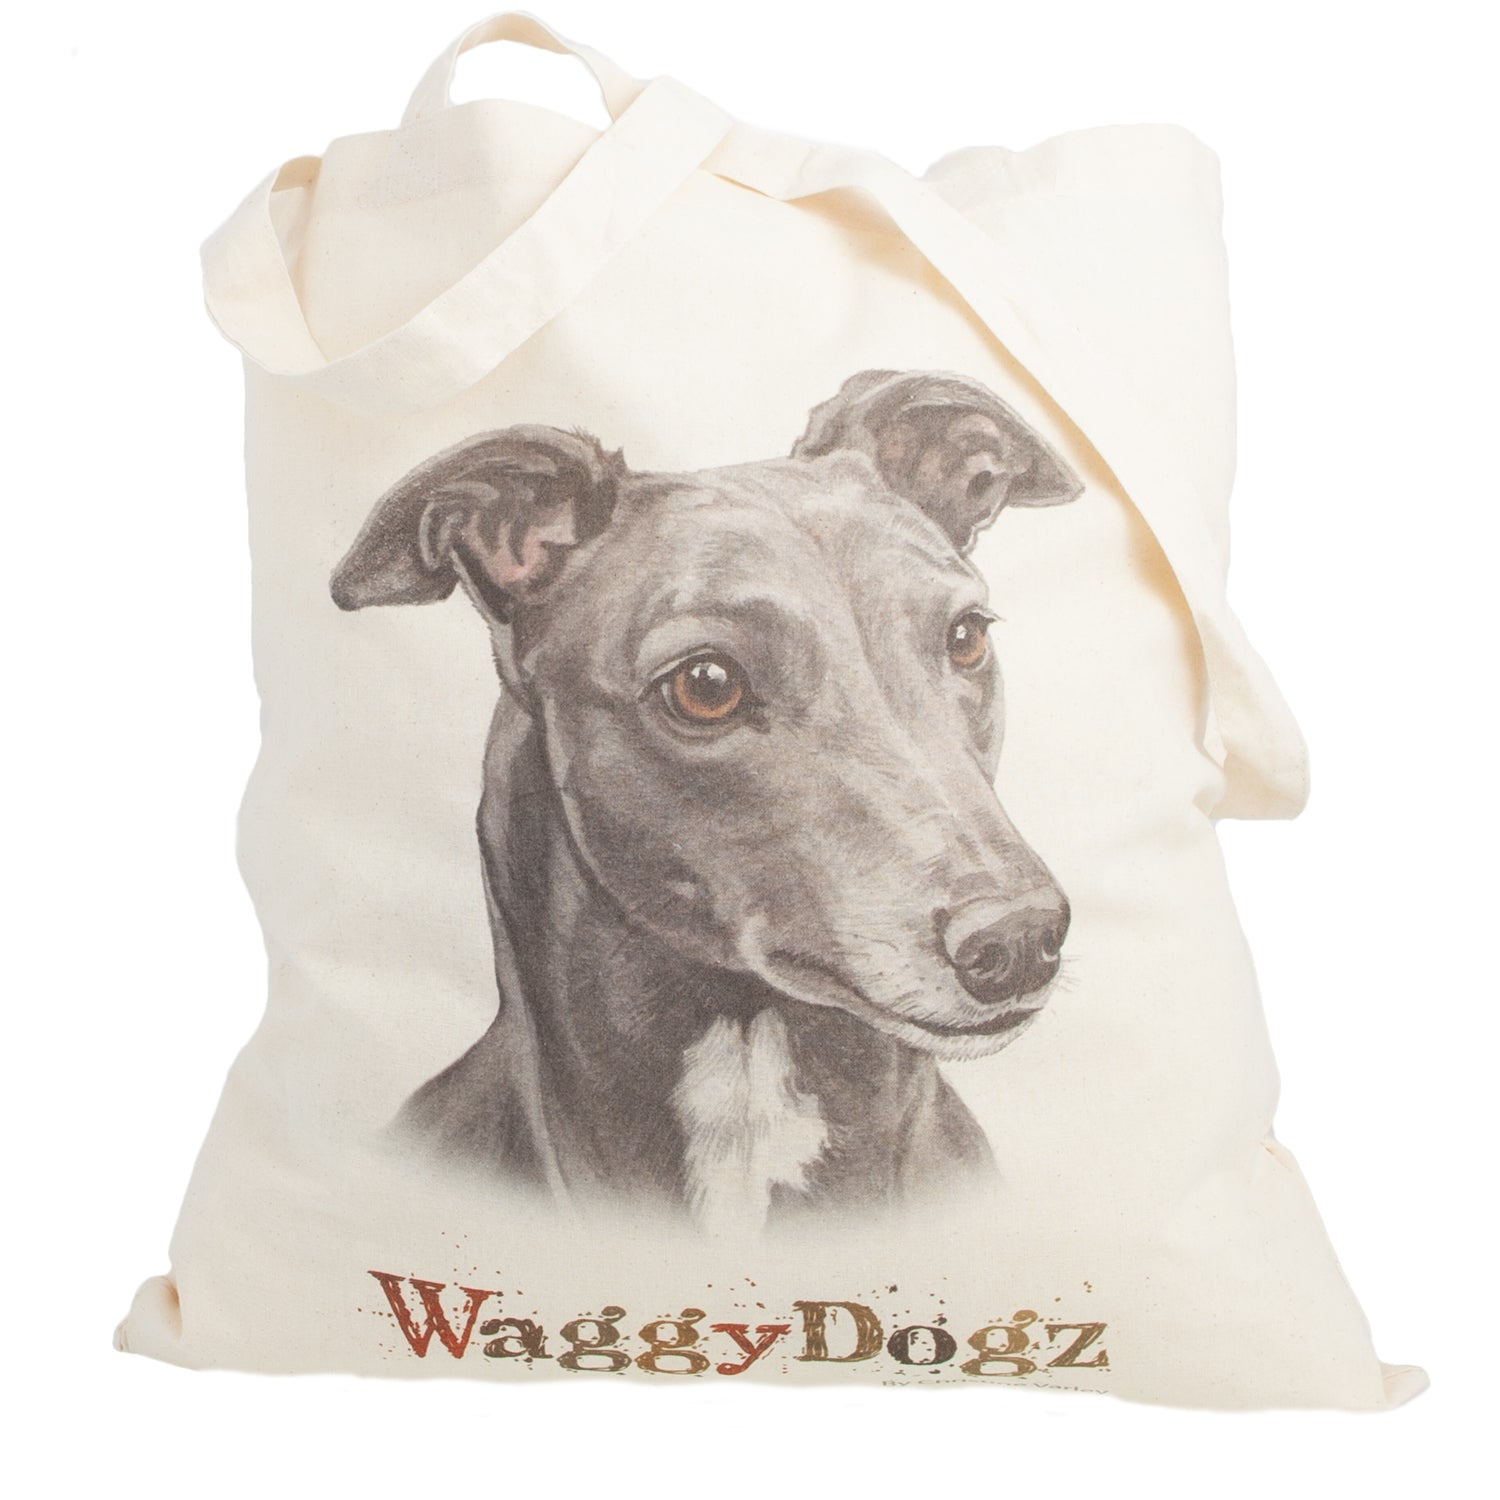 Dog Lover Gifts available at Dog Krazy Gifts. Greyhound Blue Tote Bag, part of our Christine Varley collection – available at www.dogkrazygifts.co.uk